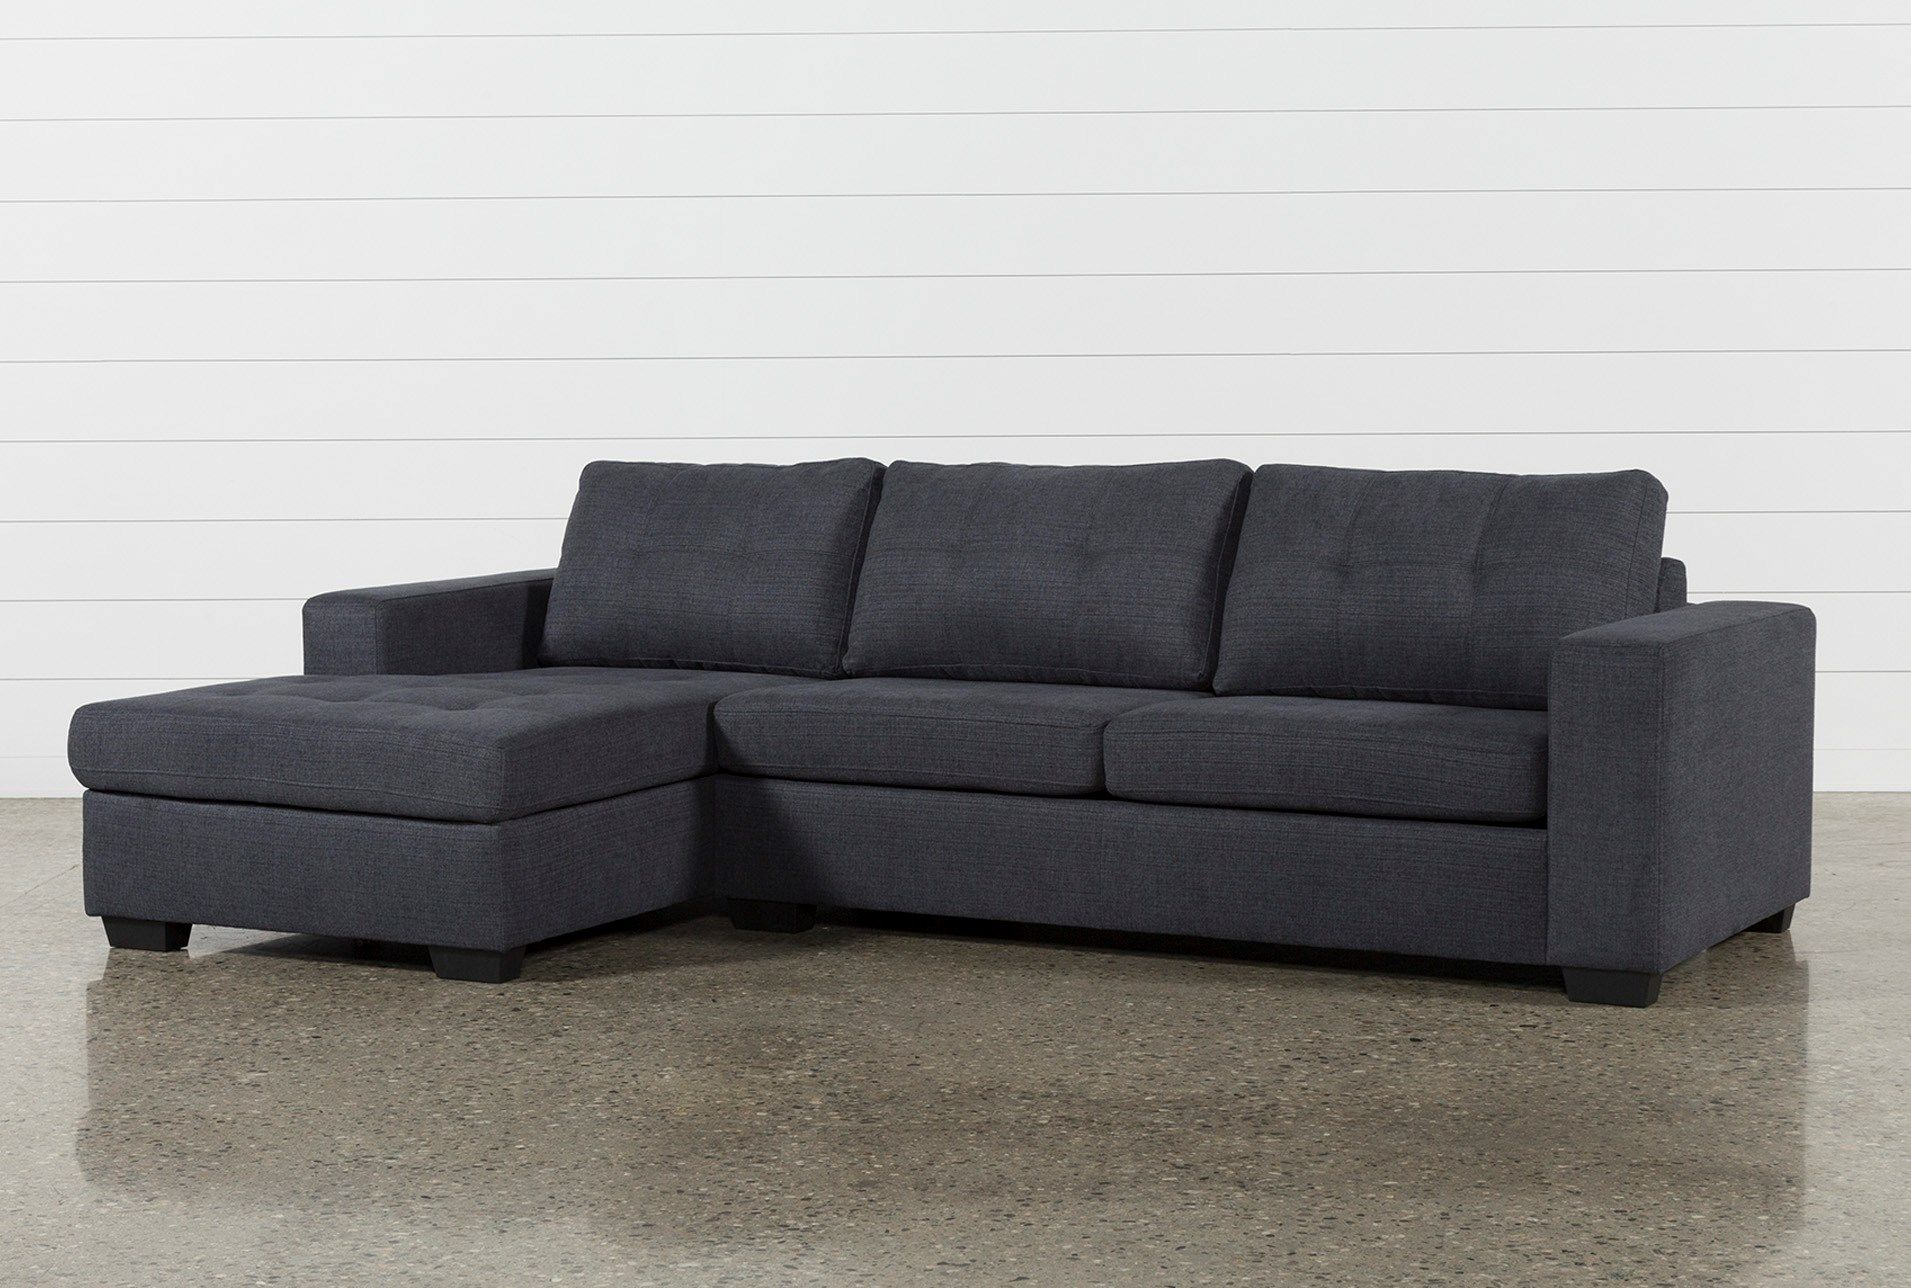 8 Beautiful Left Chaise Sectional With Storage In The Living Room